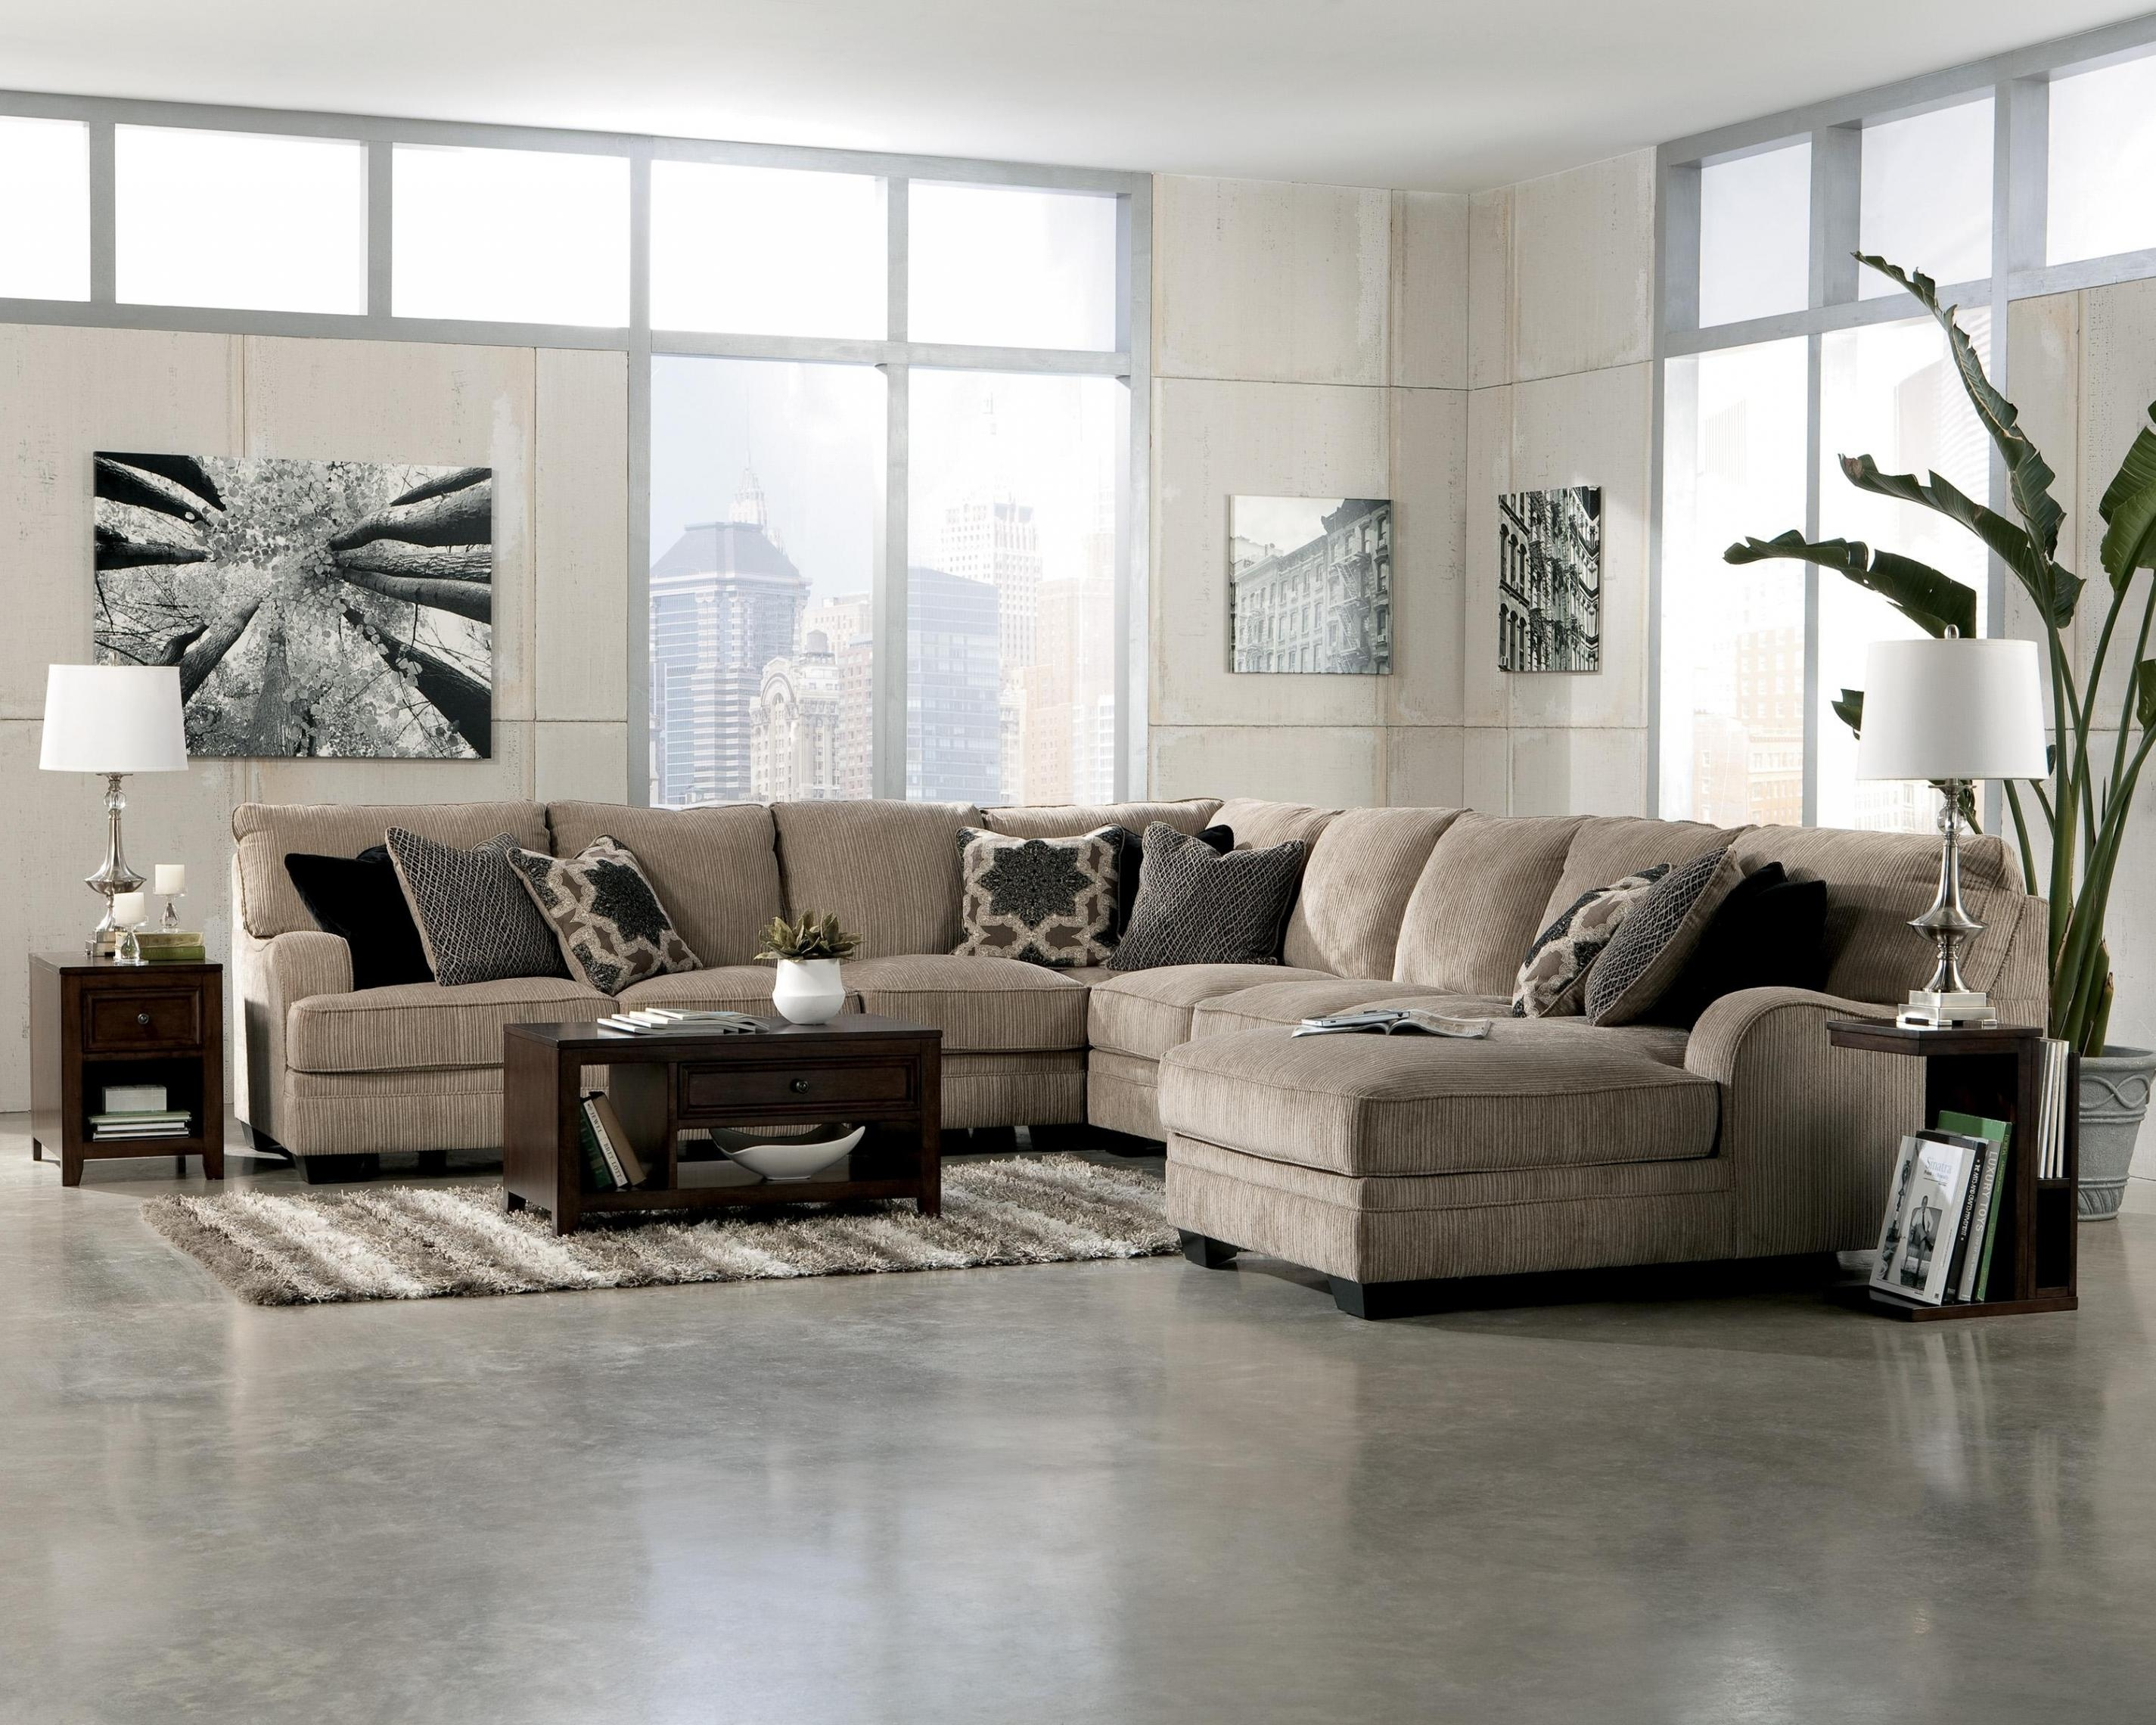 Furniture: Small Sectional Sofas For Small Spaces | Craigslist Throughout Craigslist Sectional (Image 7 of 15)